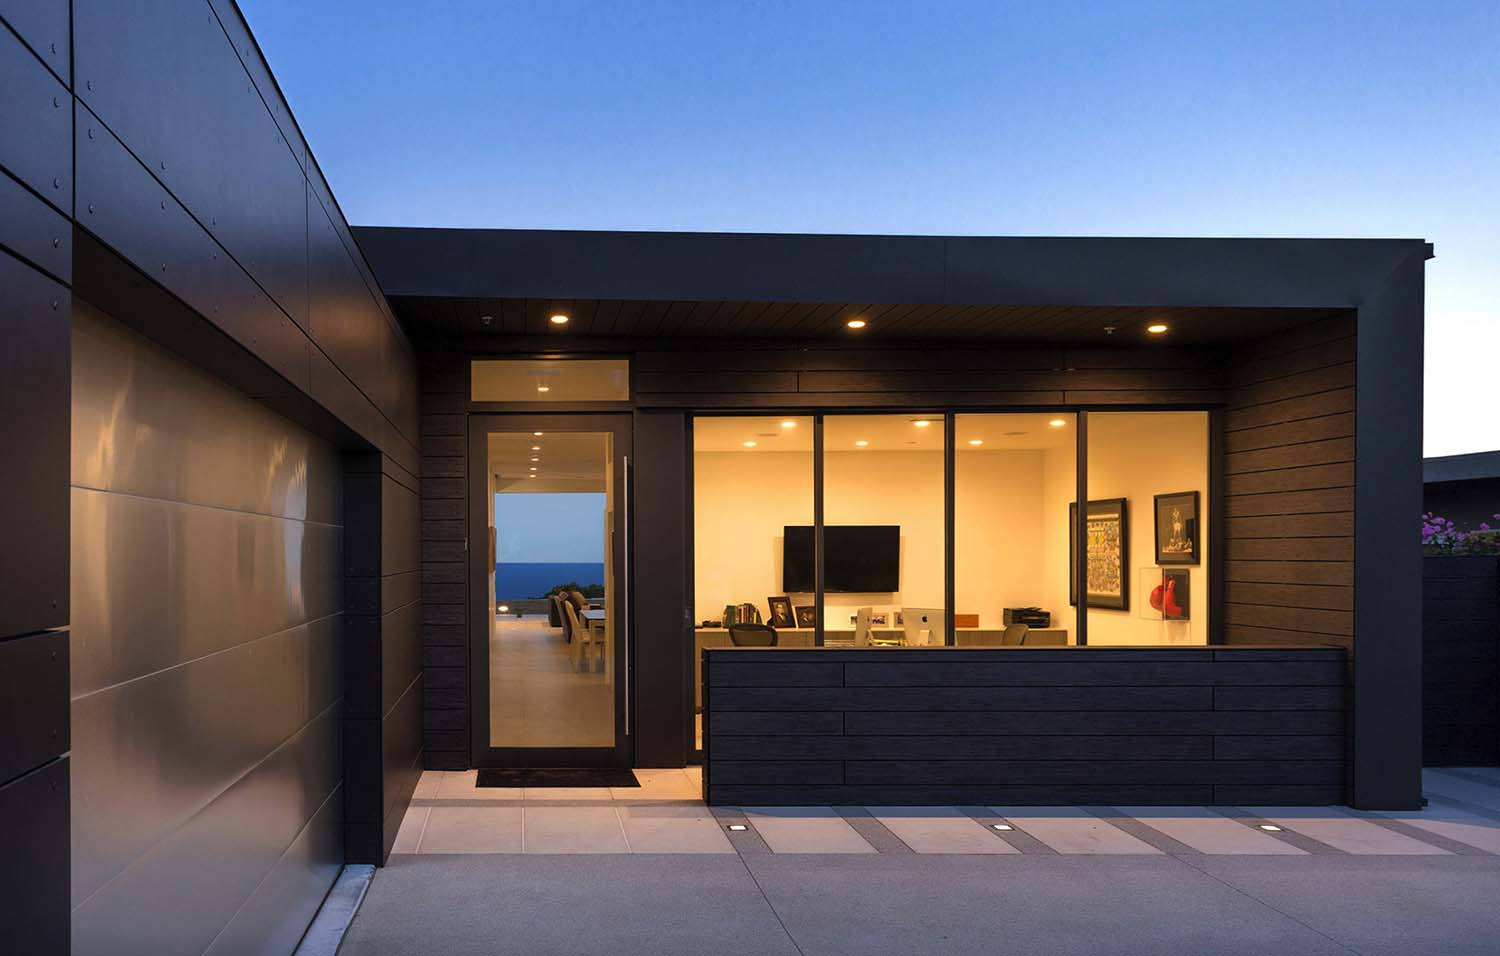 Striking Contemporary Home-Abramson Teiger Architects-02-1 Kindesign